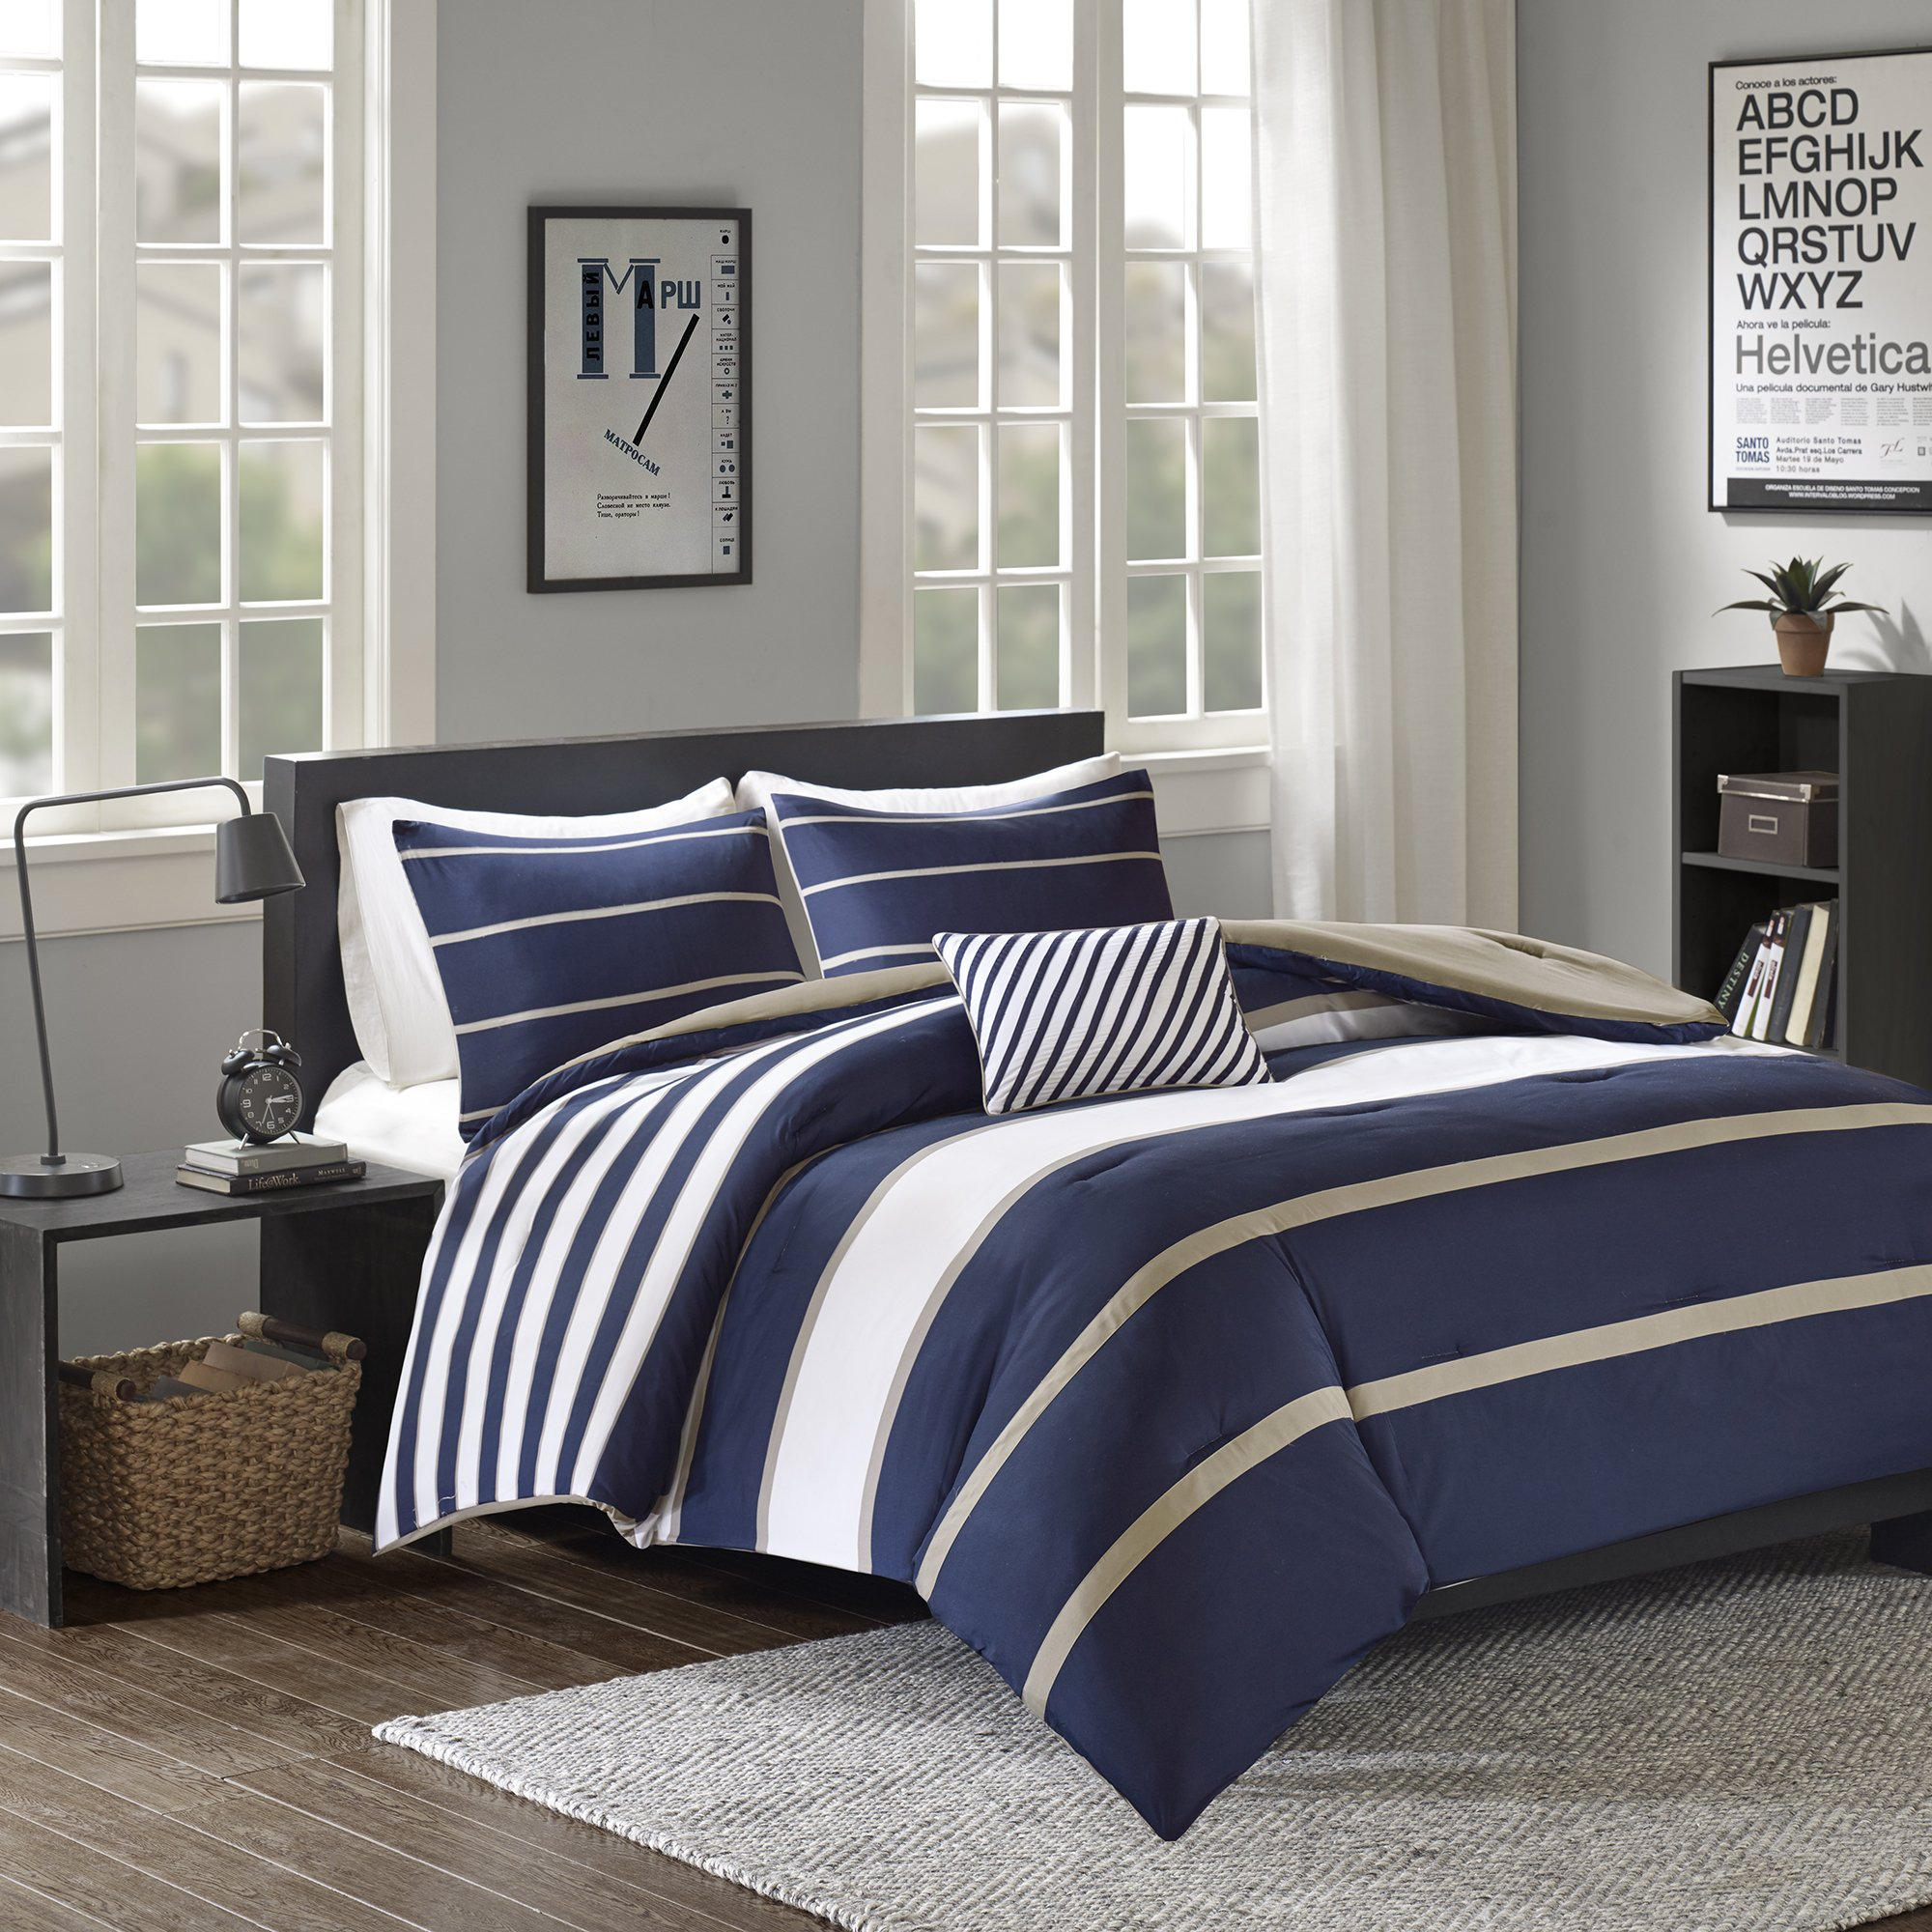 Comfort Spaces - Verone Comforter Set - 3 Piece - White, Navy, Khaki - Stripes - Perfect For College Dormitory, Guest Room - Twin/Twin XL Size, includes 1 Comforter, 1 Sham, 1 Decorative Pillow